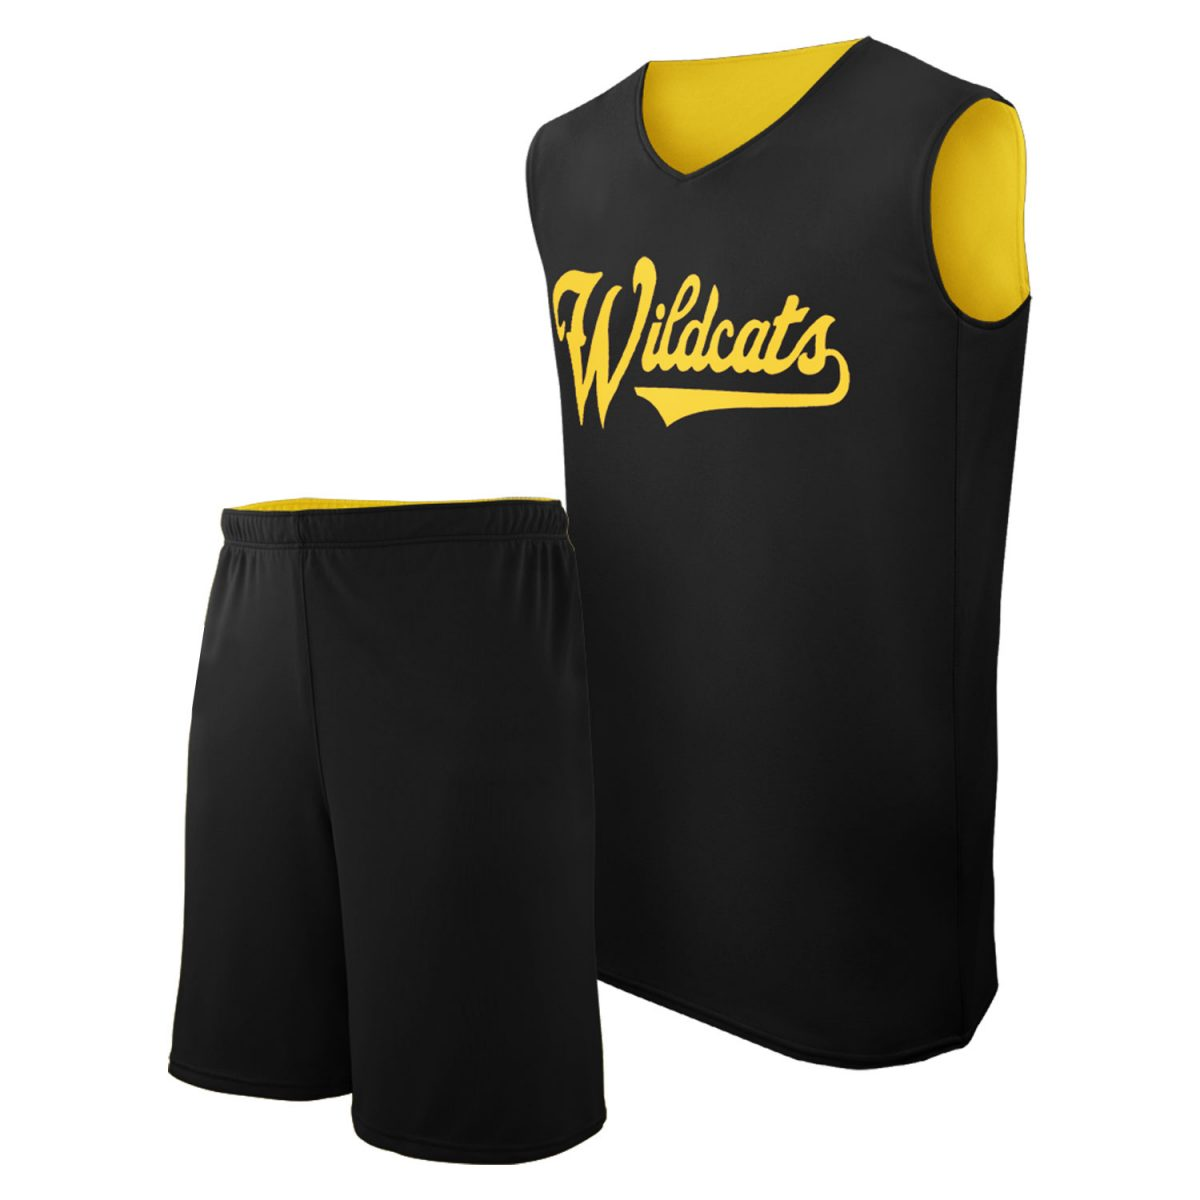 Boys Basketball Uniforms Manufacturers in Peru